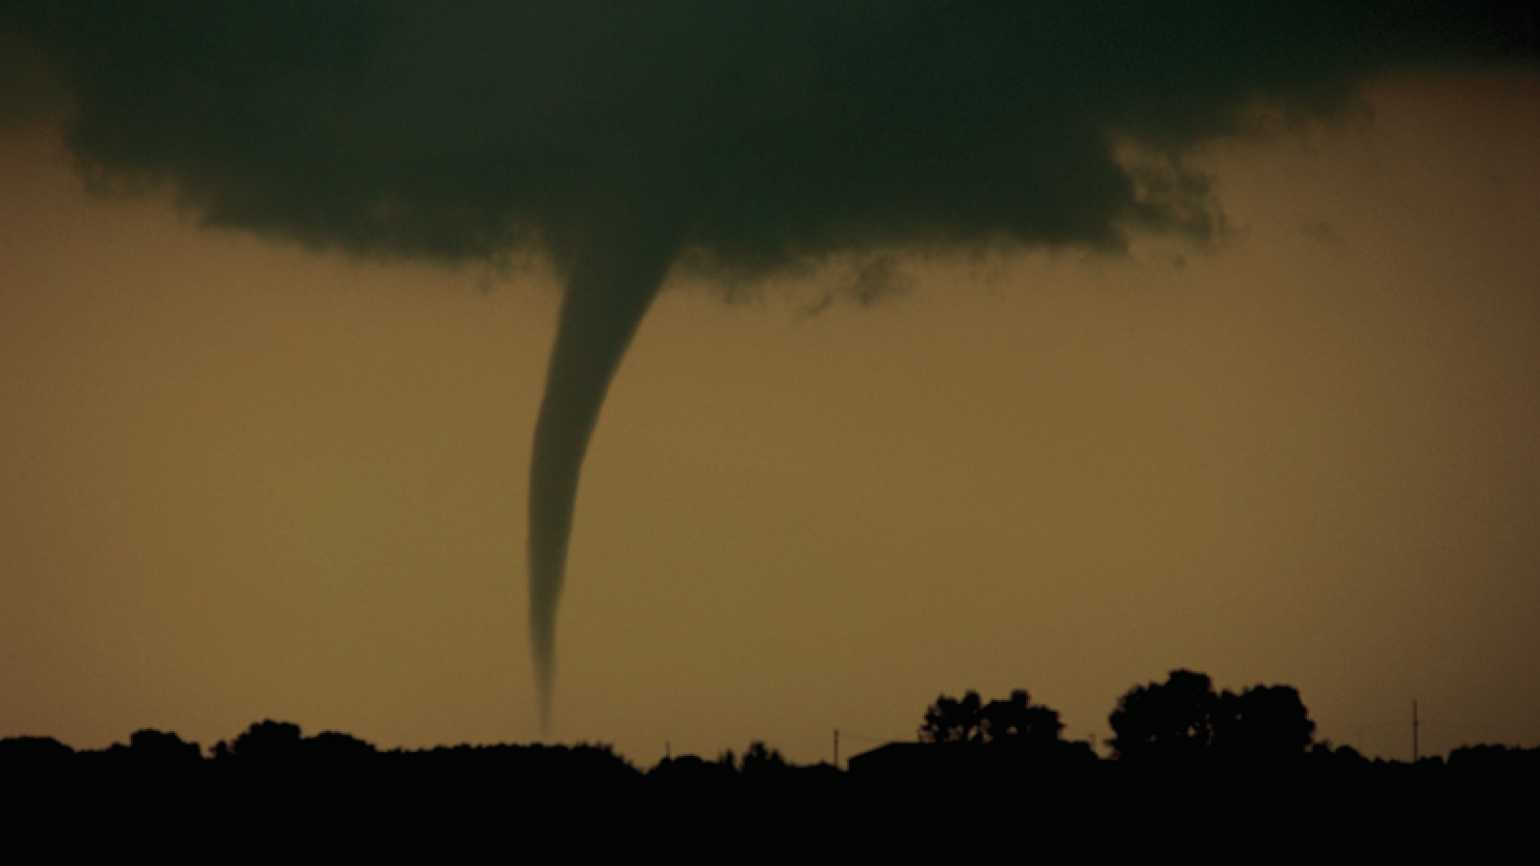 A funnel cloud dips down from dark, stormy clouds.